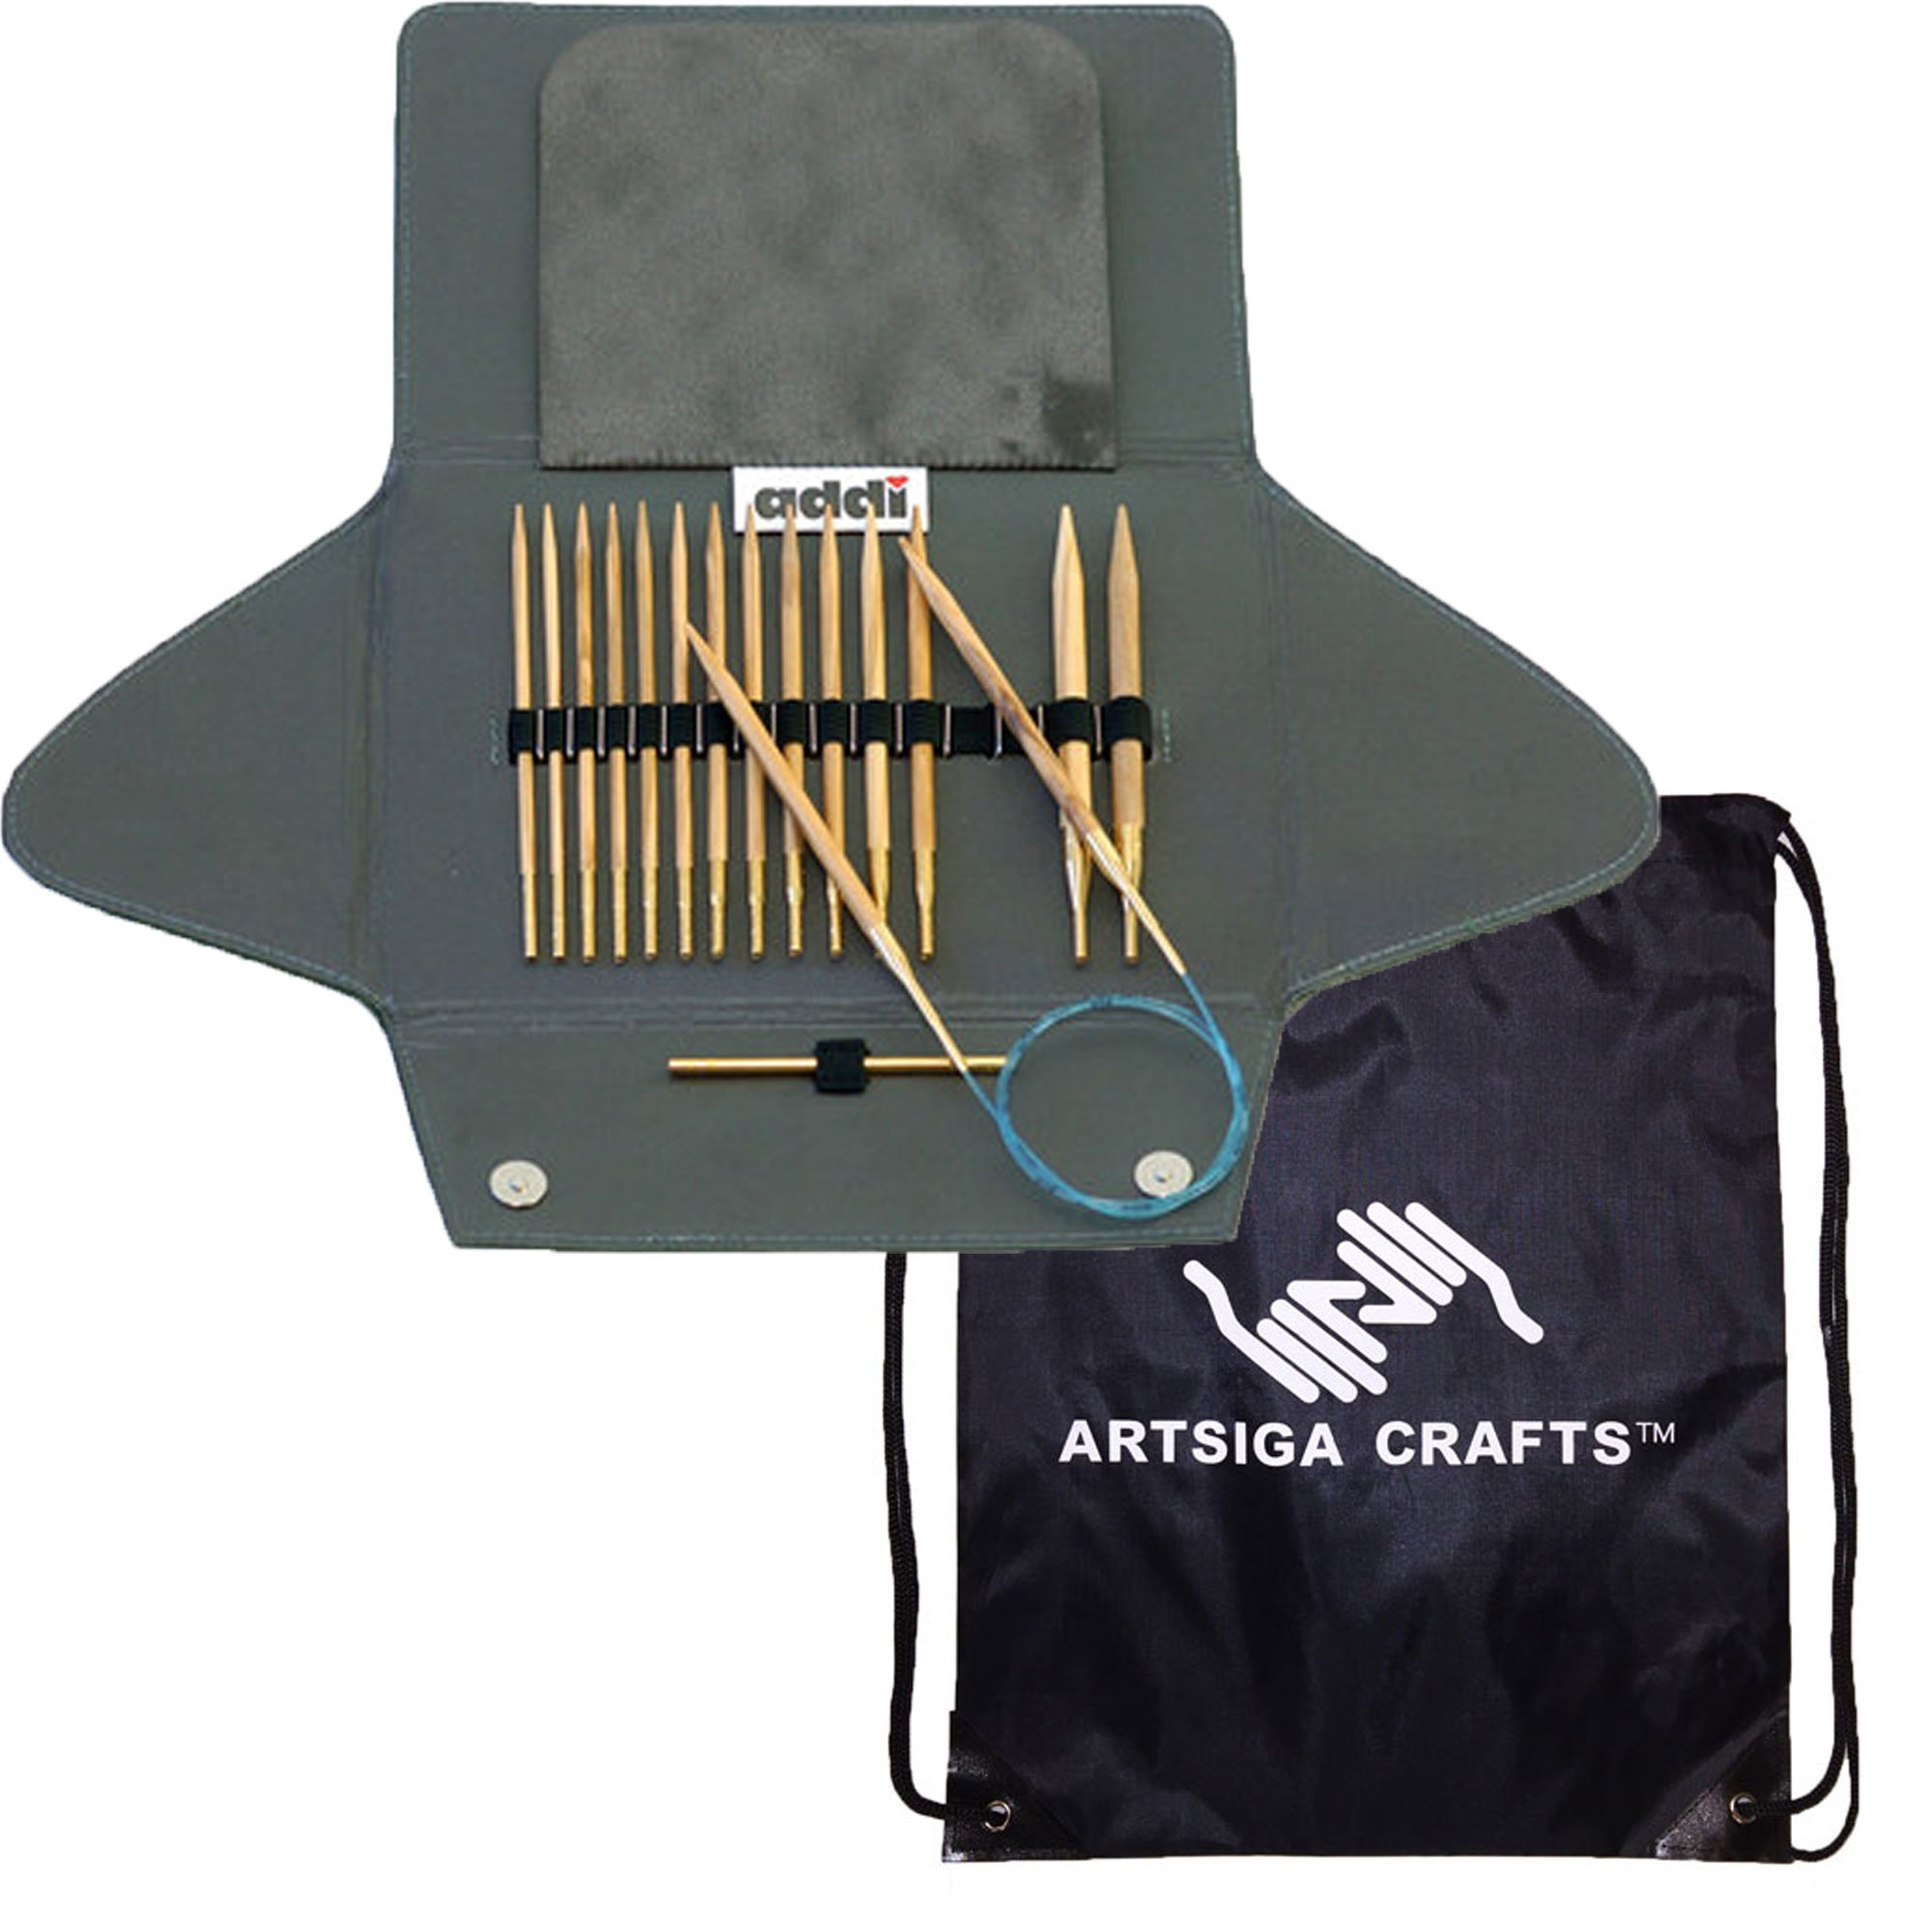 addi Knitting Needles Click Olive Wood Interchangeable System with Skacel Exclusive Blue Cords Bundle with 1 Artsiga Crafts Project Bag